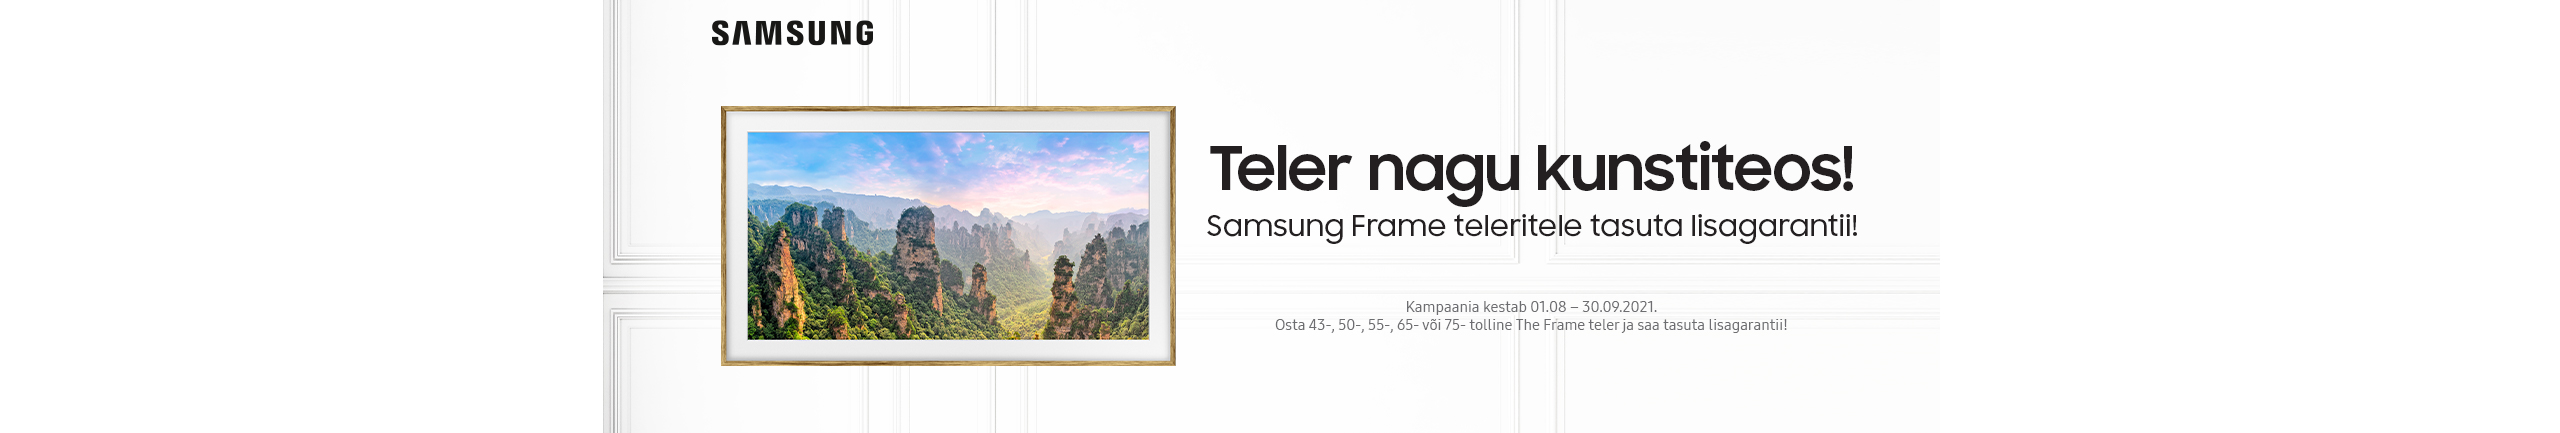 Free extended warranty with selected Samsung Frame TVs